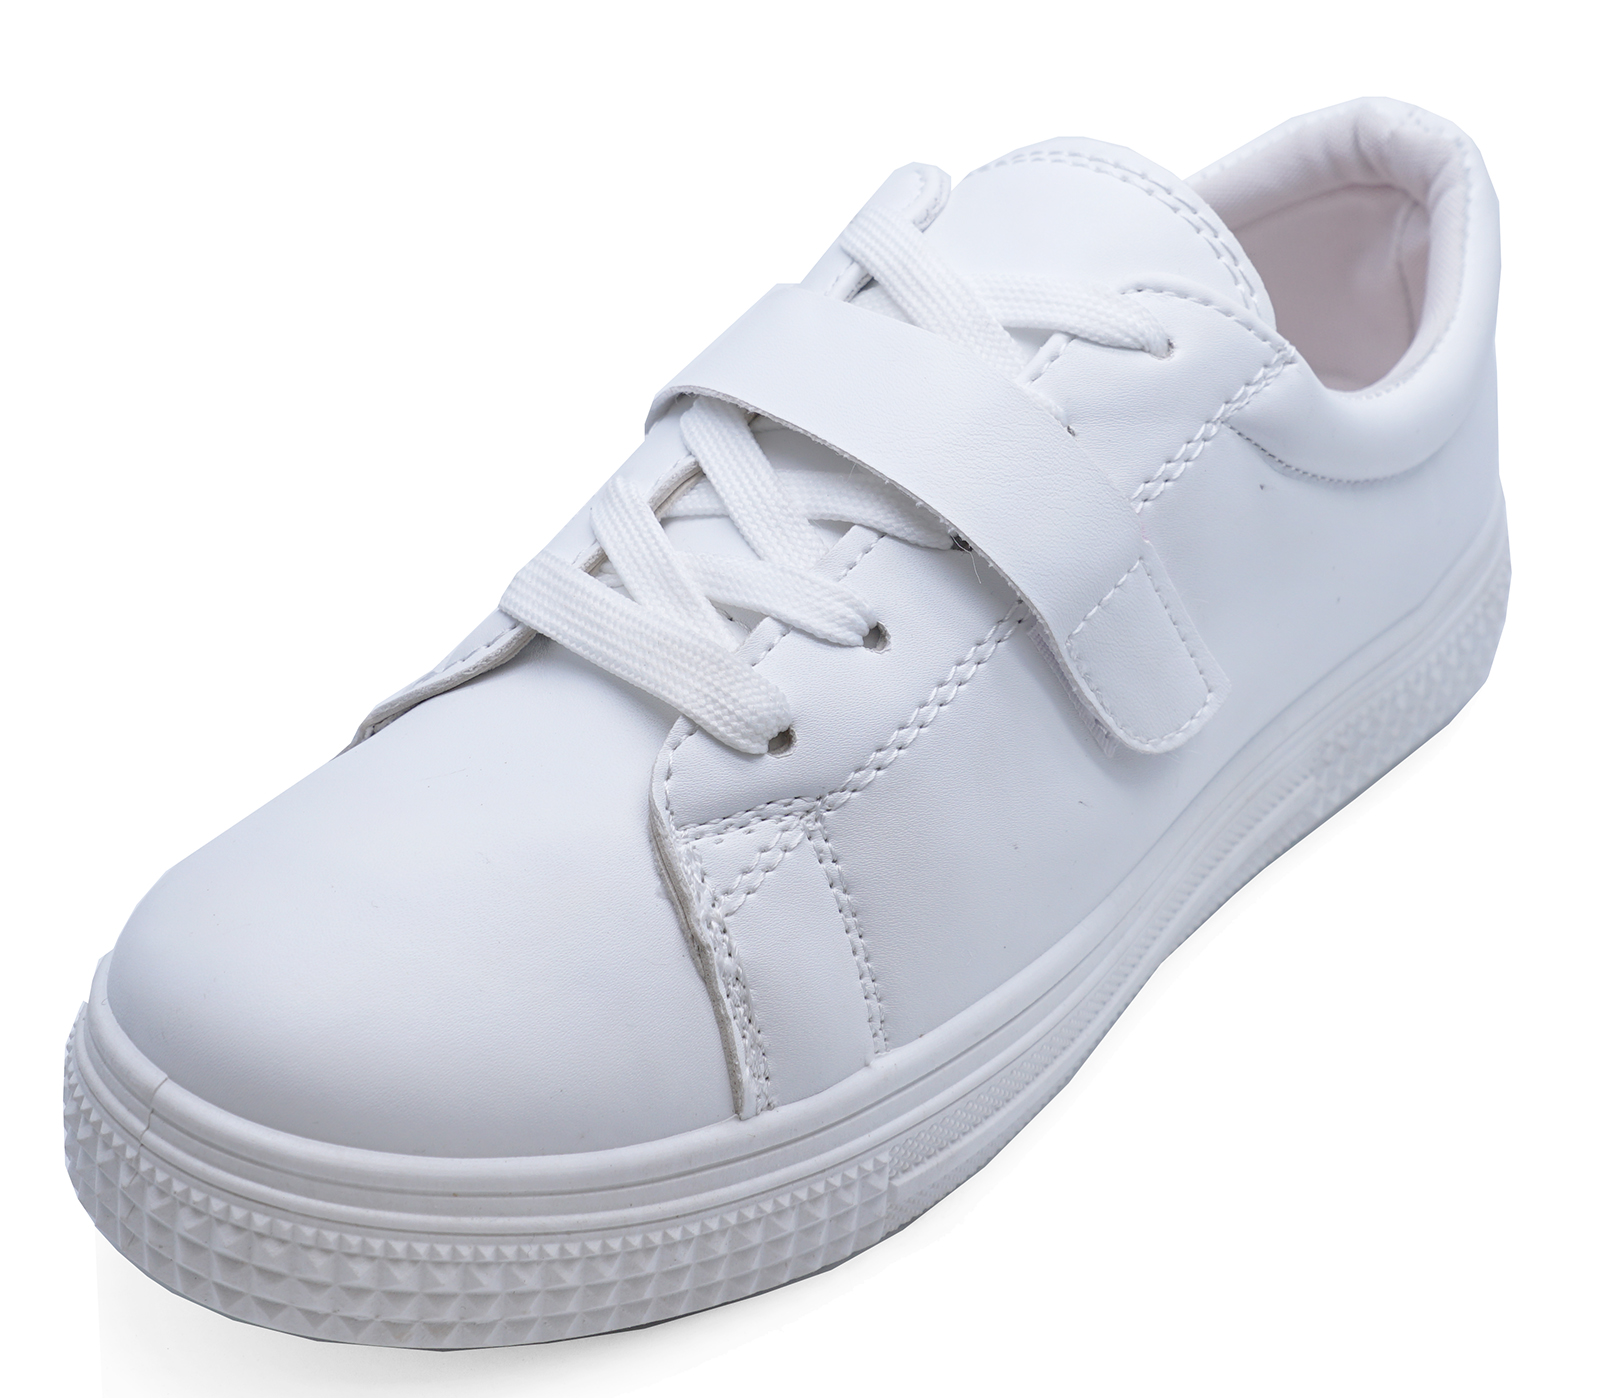 b8c173f405c Details about WOMENS FLAT WHITE LACE-UP TRAINERS PUMPS PLIMSOLLS CASUAL  SKATER SHOES UK 3-8